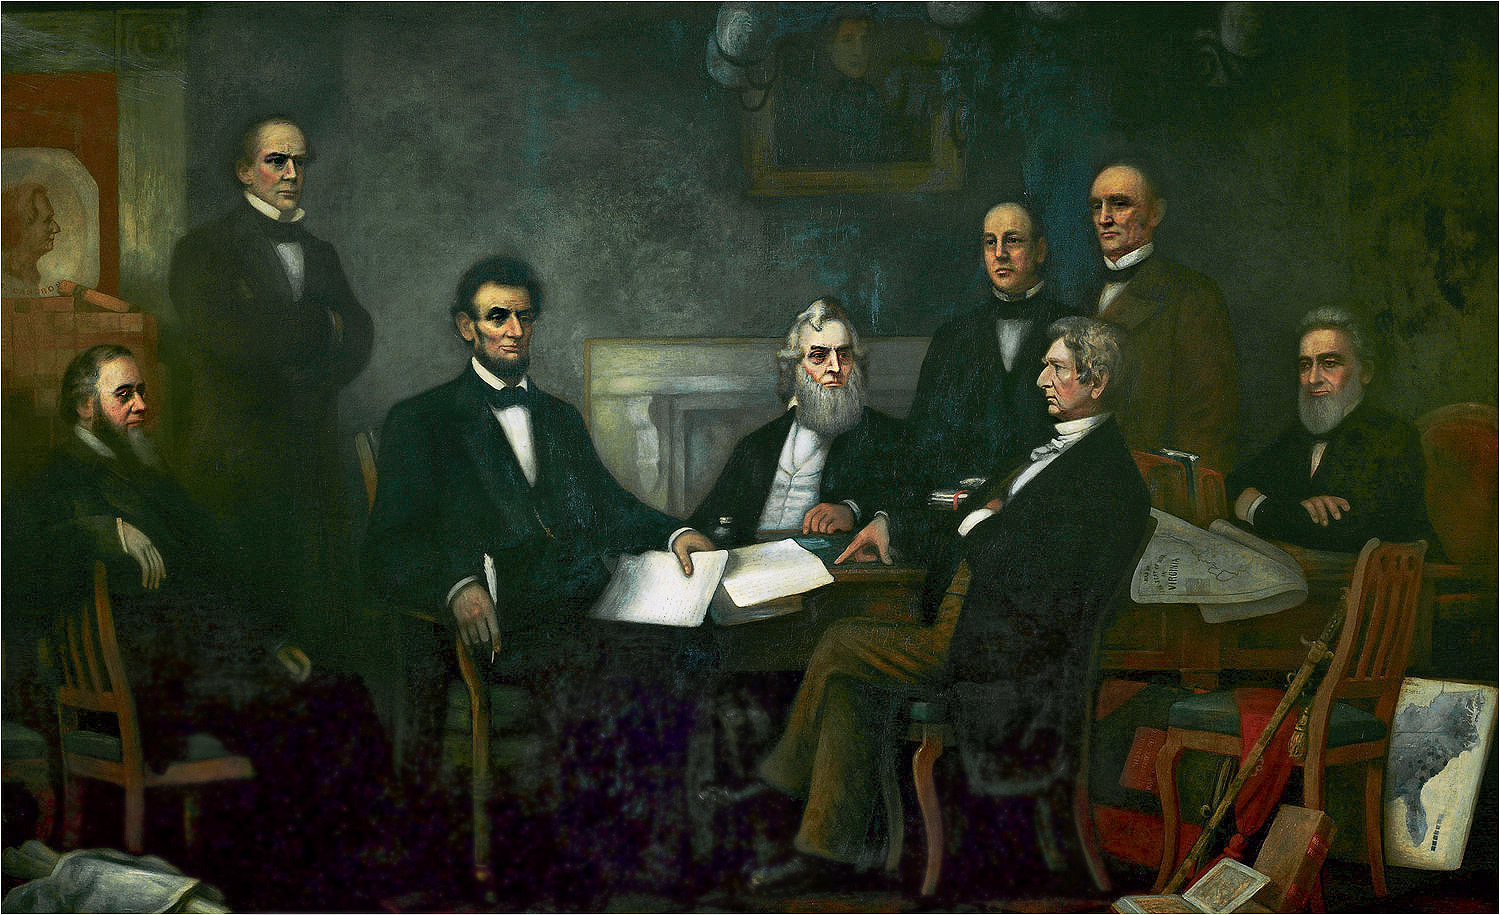 a history of the emancipation proclamation by abraham lincoln in the southern states The emancipation proclamation or proclamation 95 was the executive order signed by us president abraham lincoln on january 1, 1863 it was issued during the civil war, giving millions of enslaved africans their freedom.